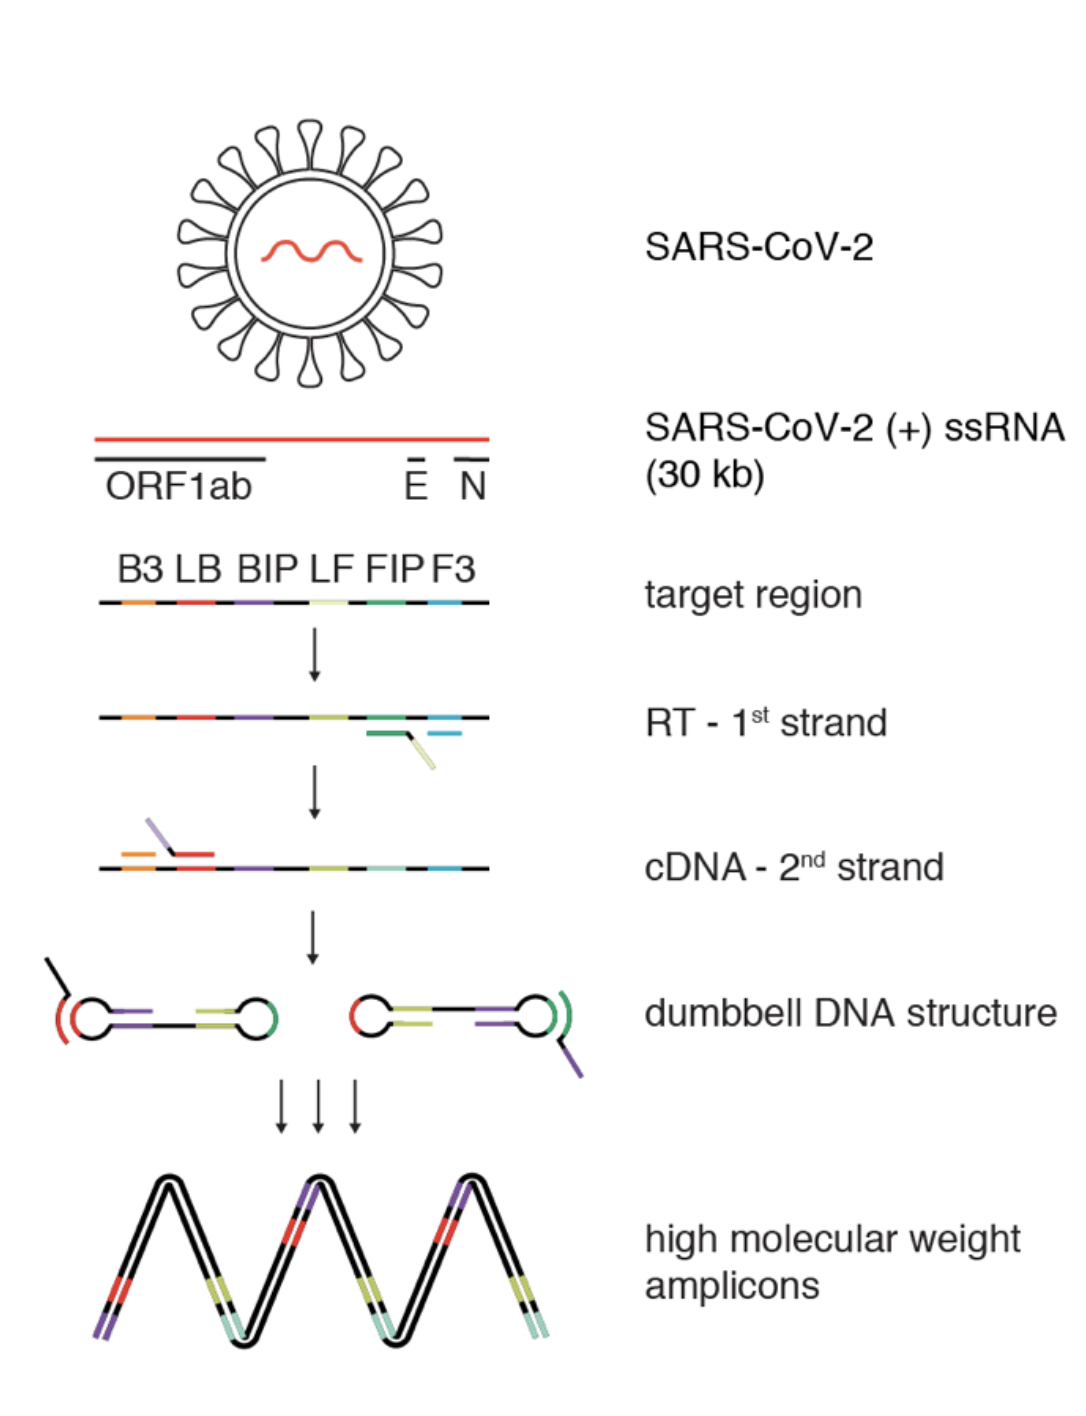 the Loop-mediated isothermal amplification after reverse transcription (RT-LAMP) method